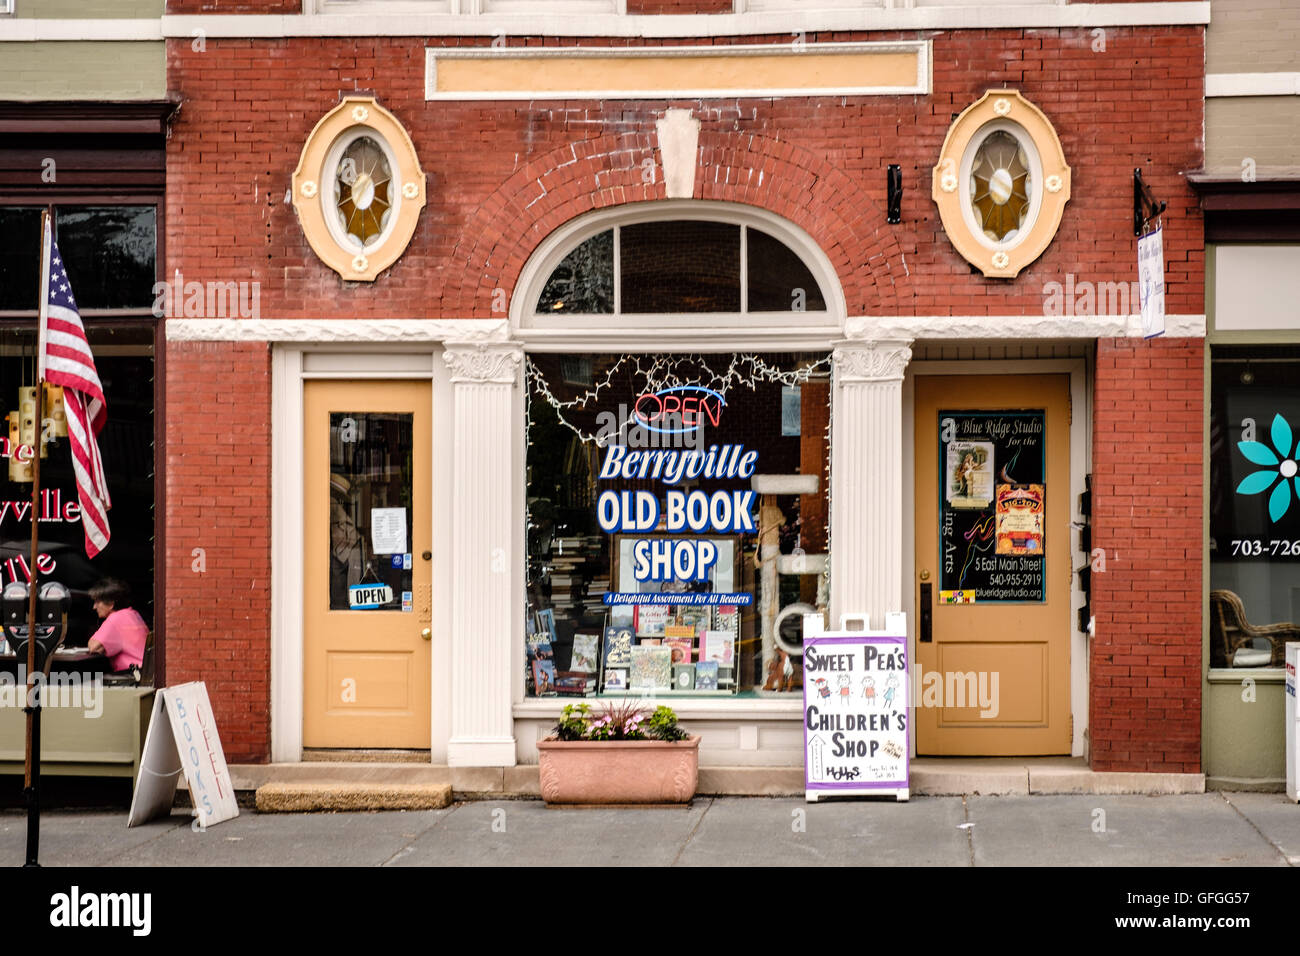 Berryville Old Book Shop, former First National Bank building, 7 East Main Street, Berryville, Virginia - Stock Image